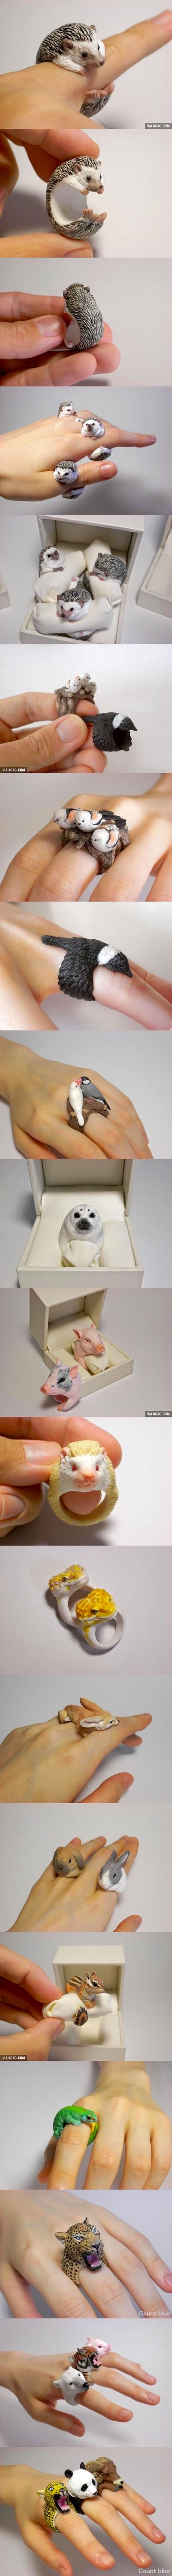 Pin by rebekah on hedgehog pinterest clay polymer clay and clay